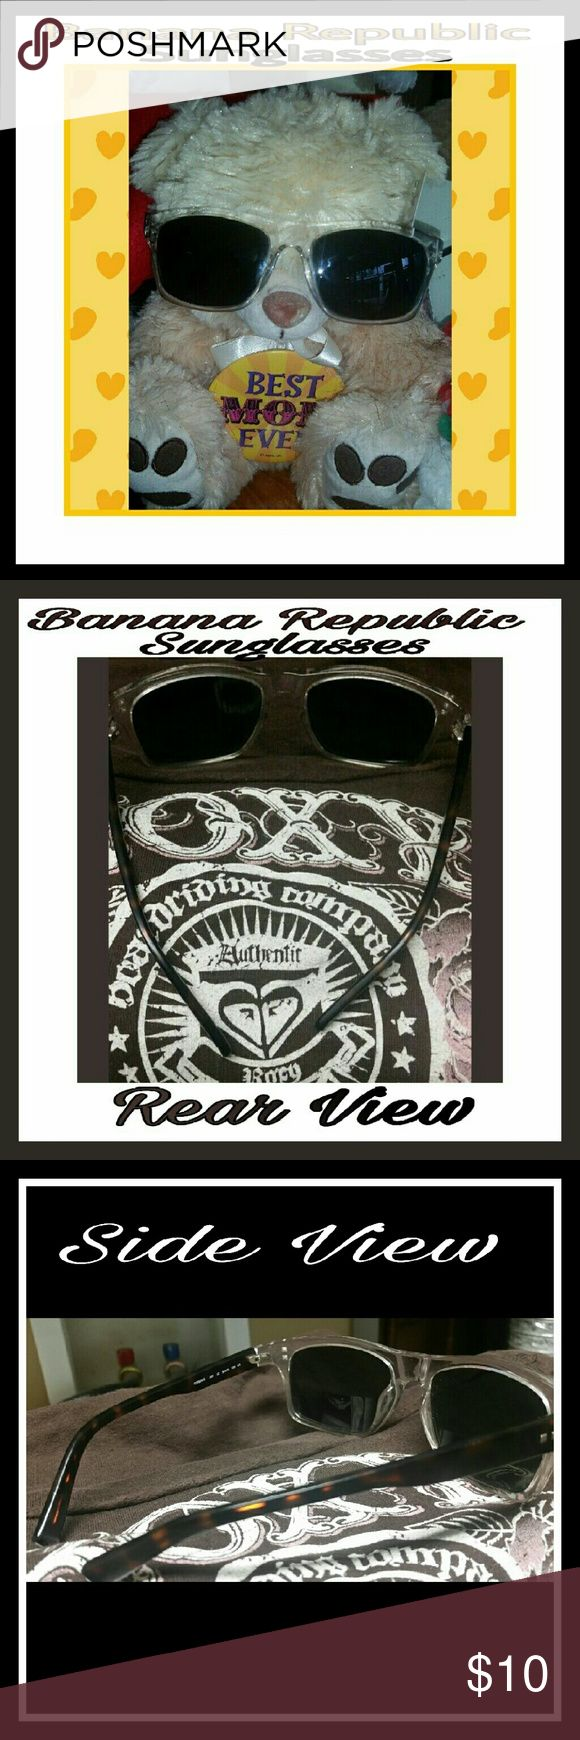 BANANA REPUBLIC  SUNGLASSES Clear colored frames with tortoise colored arms. In good condition,  no scratches,  without case. Banana Republic Accessories Sunglasses